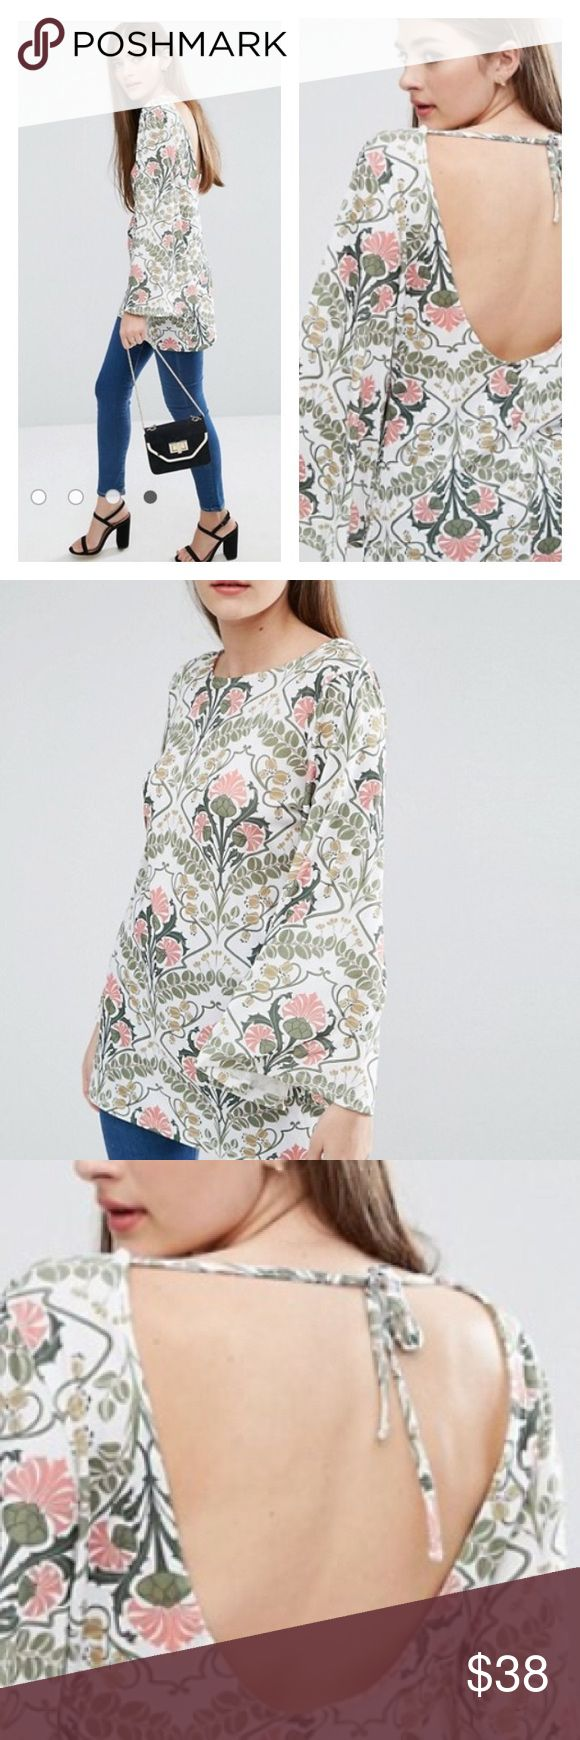 ASOS TOP W/BELL SLEEVES AND OPEN BACK TILE PRINT ASOS smooth knit fabric with rounded neckline,fluted sleeves and a open keyhole back with tie fastening. Relaxed fit. Material: 95% Polyester 5% elastane.  Machine wash ASOS Tops Tunics